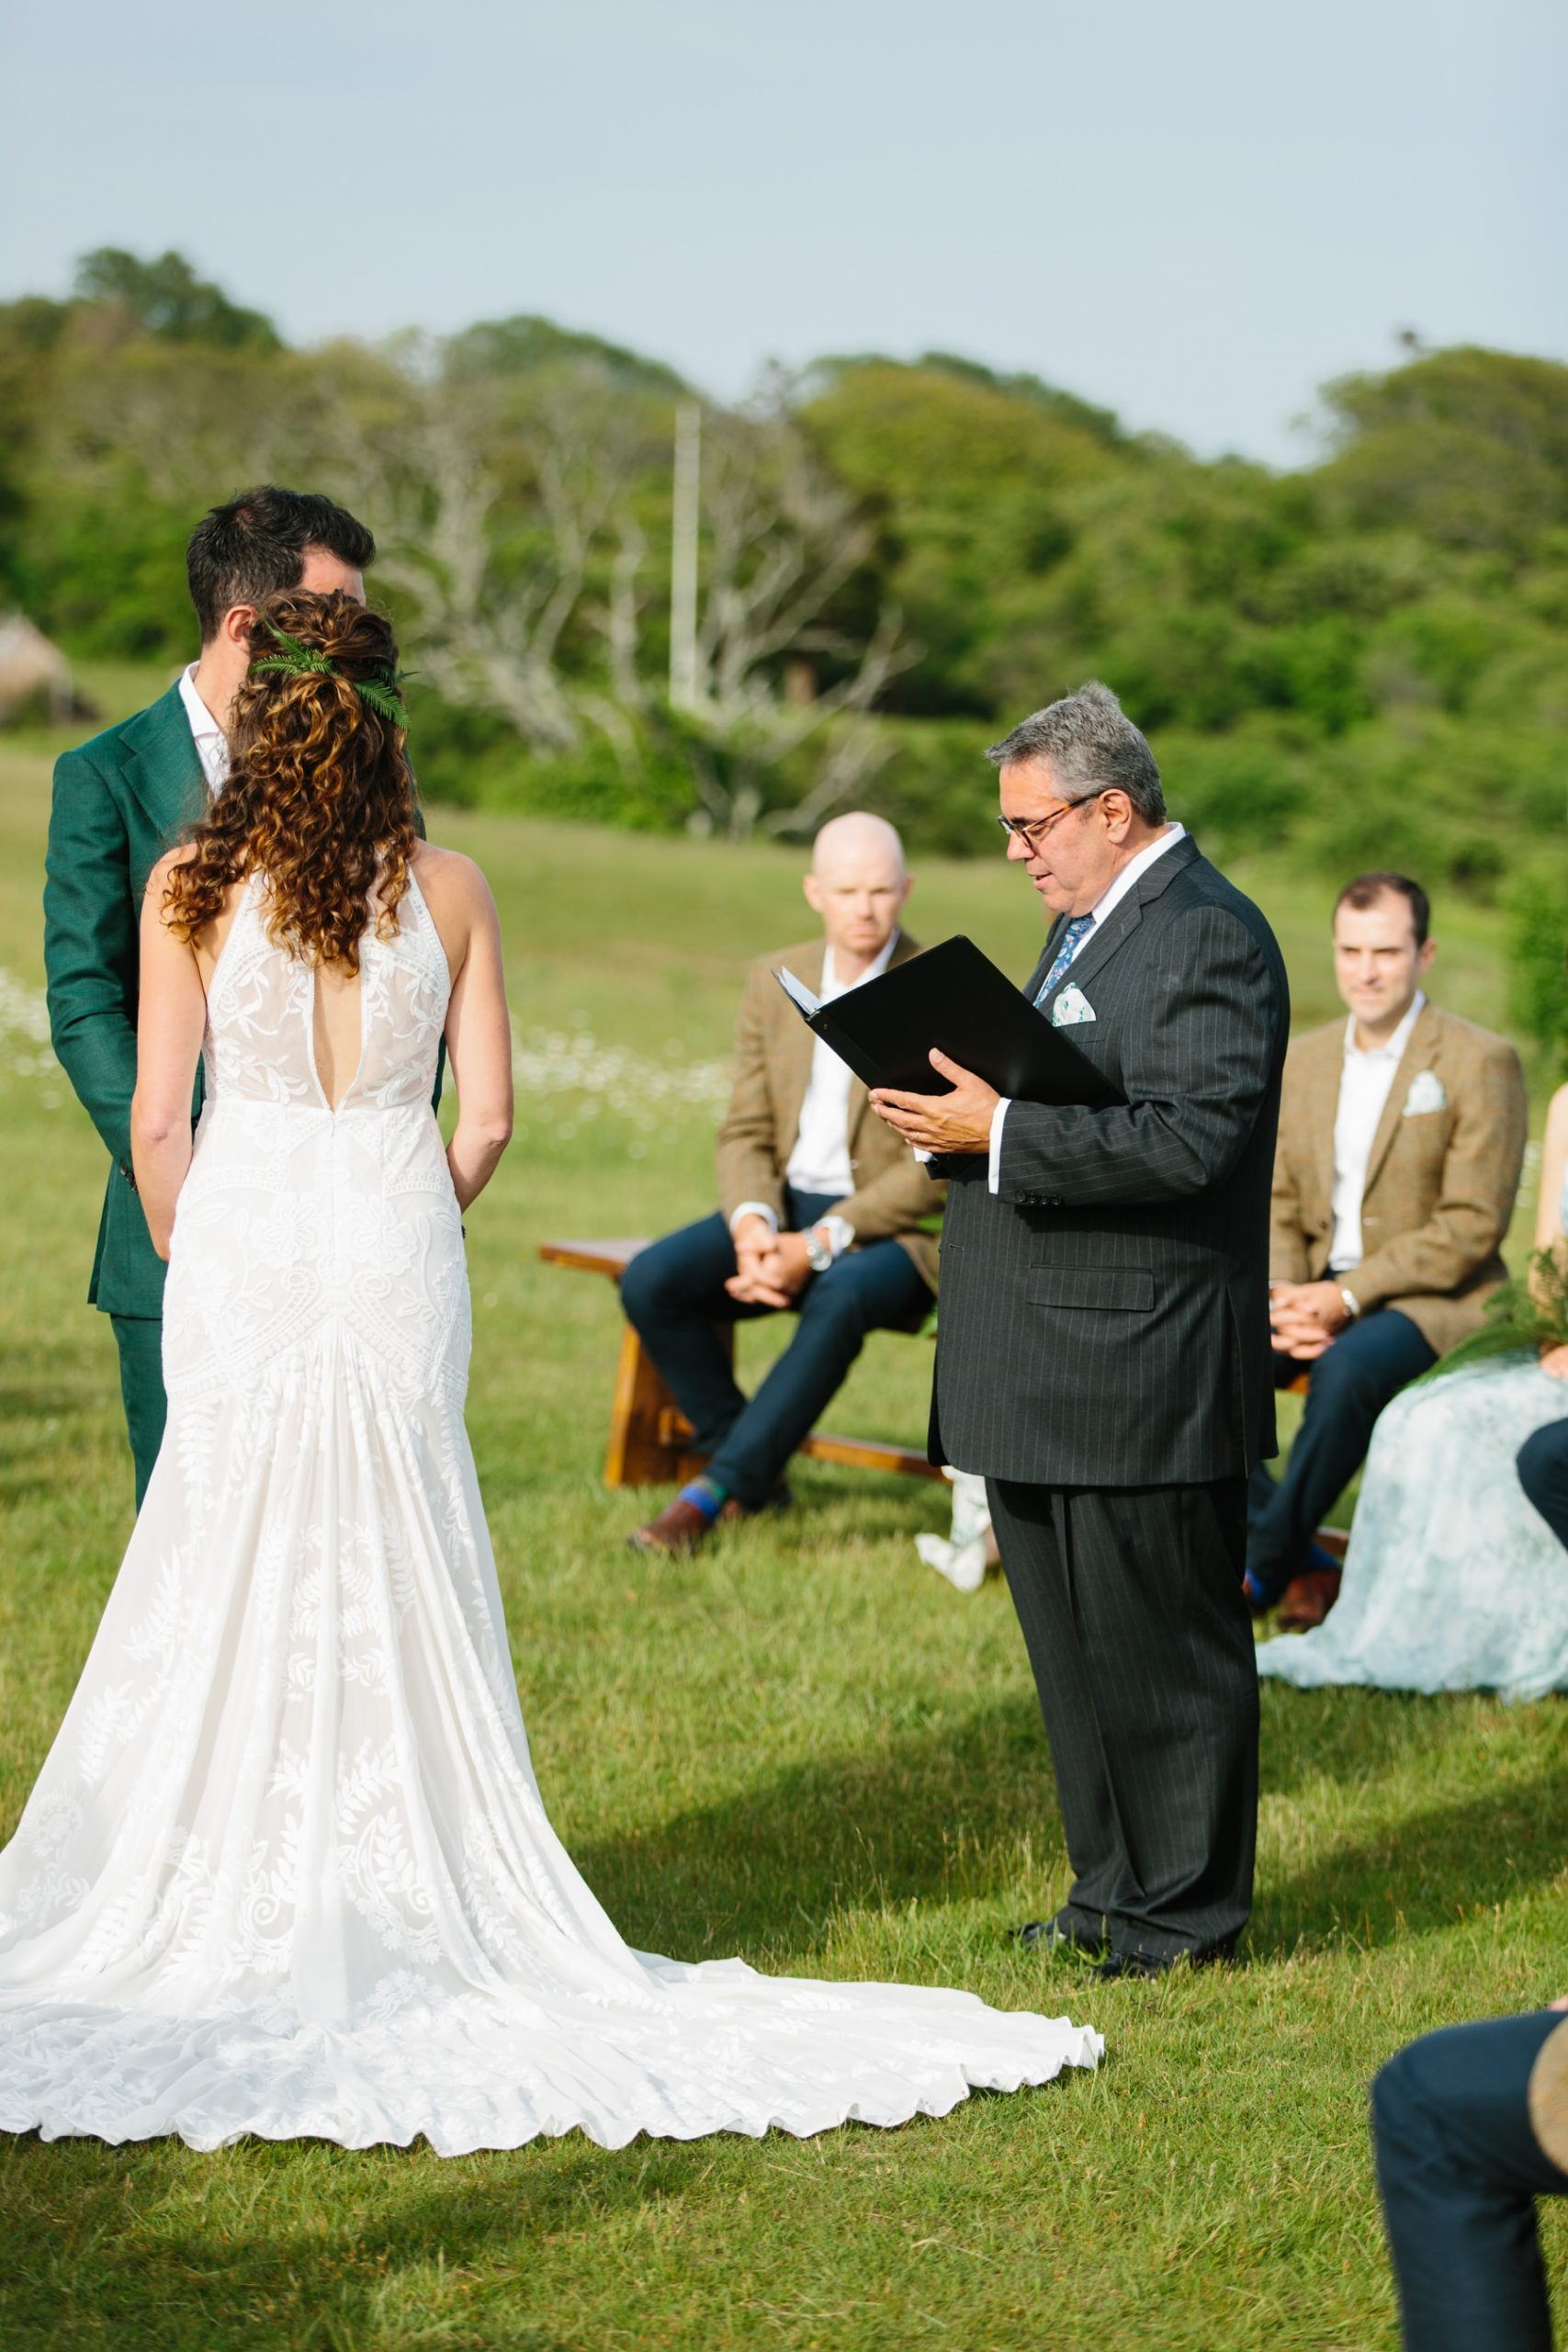 family friend officiant